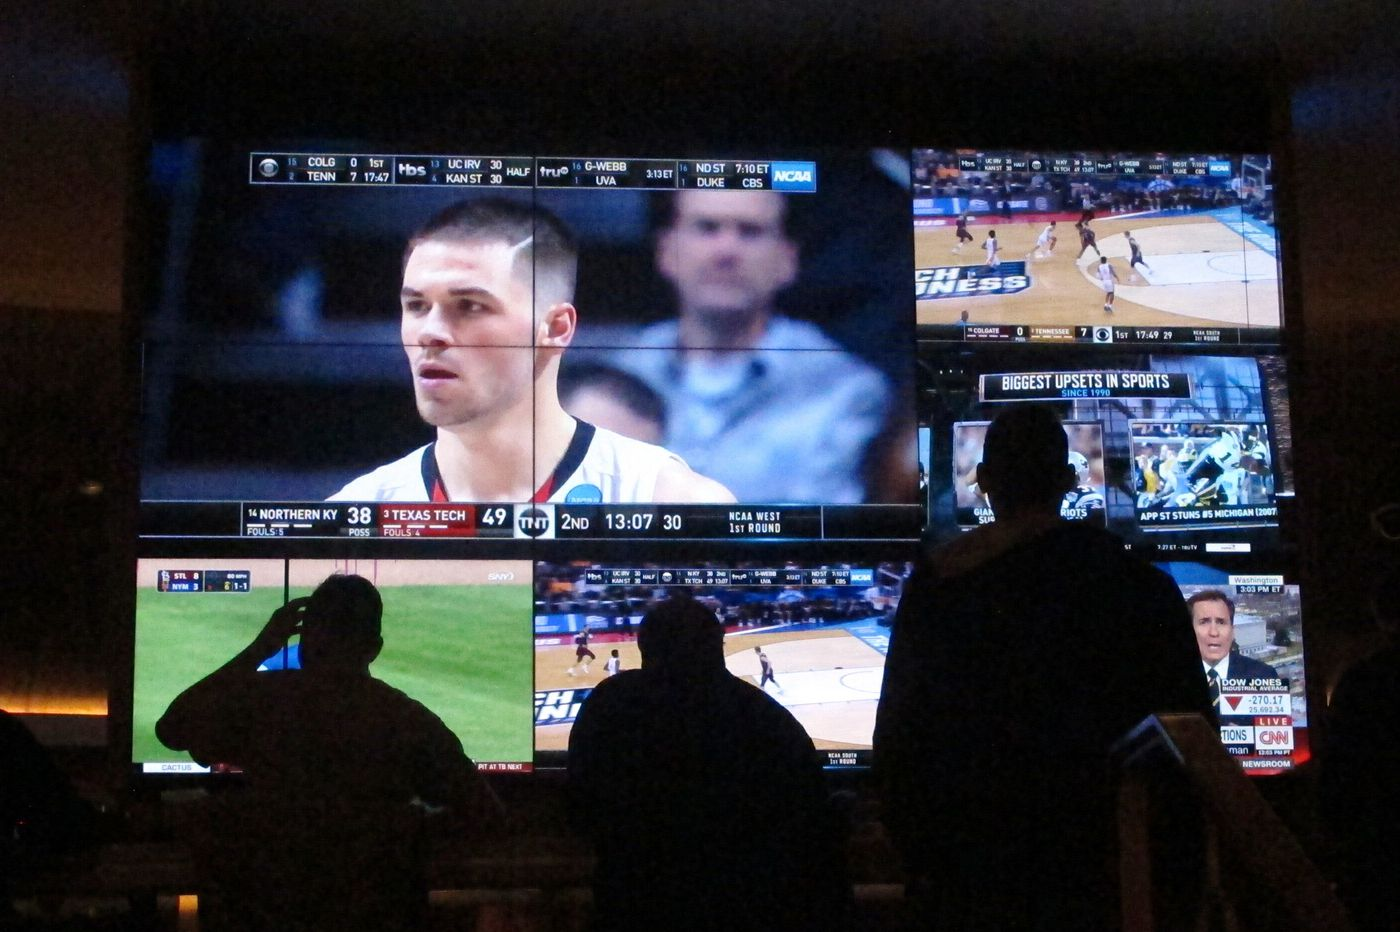 Gambler's guide to betting on sports in Atlantic City